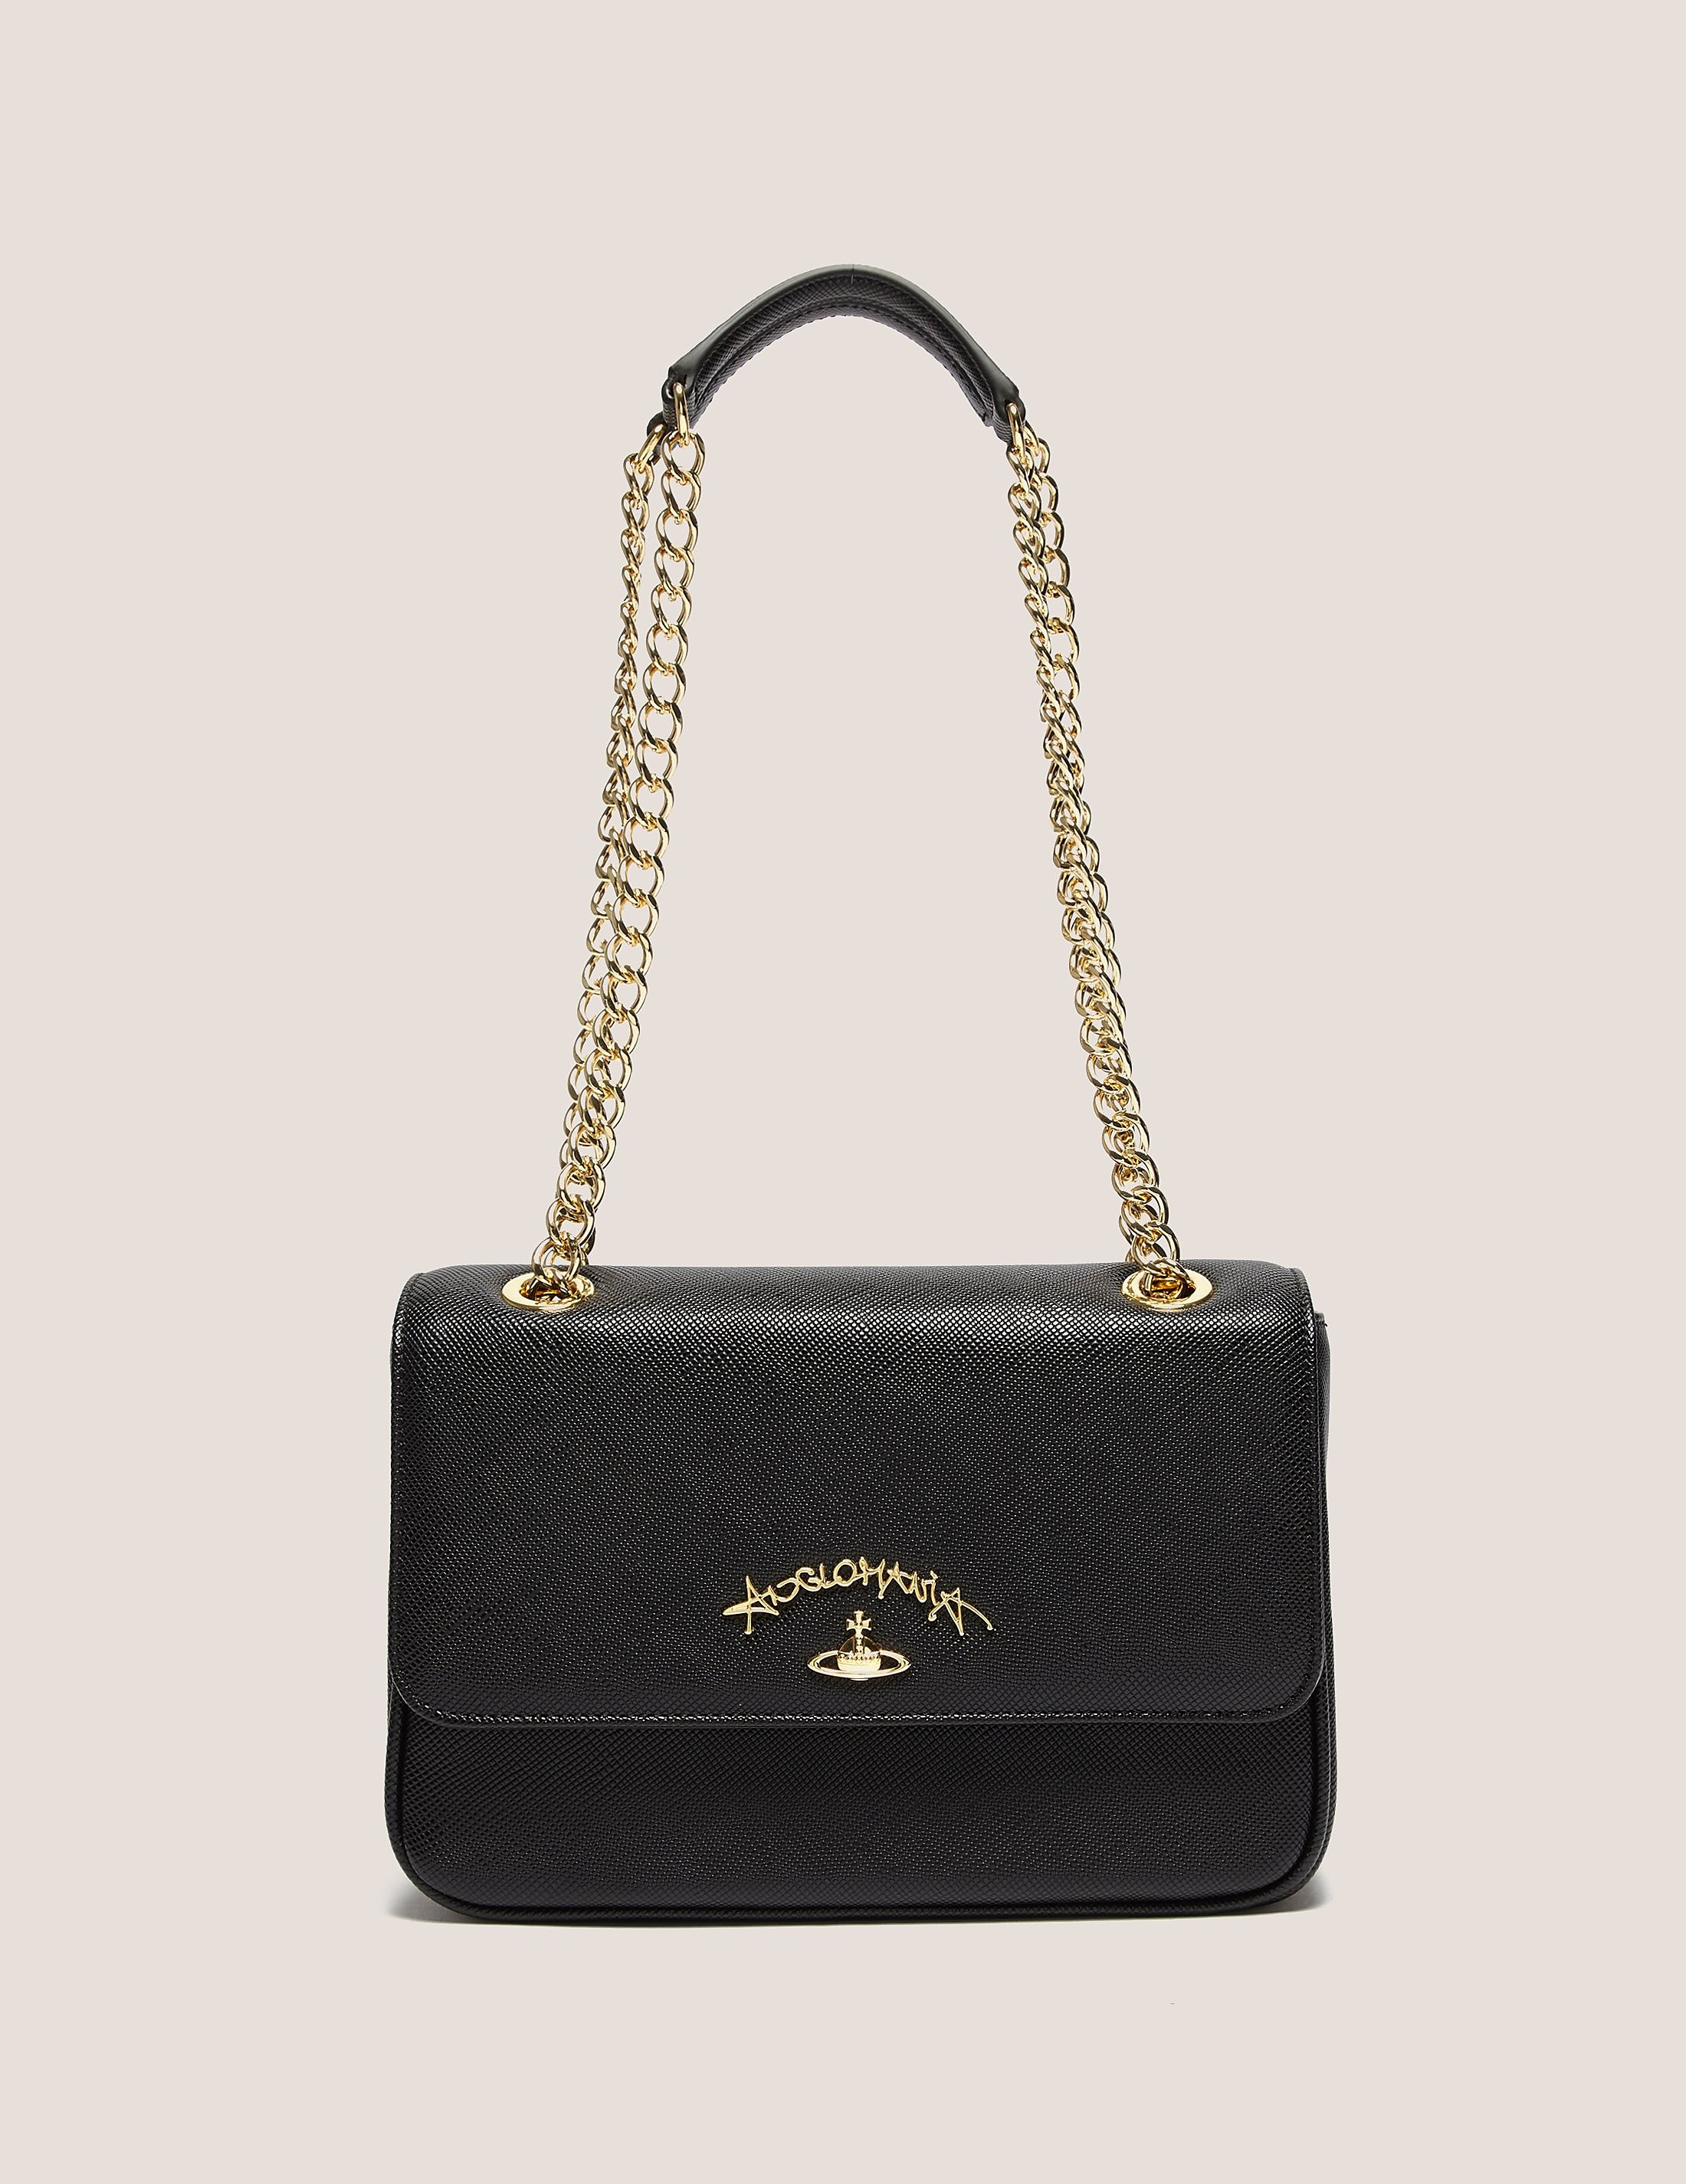 Vivienne Westwood Divina Shoulder Bag